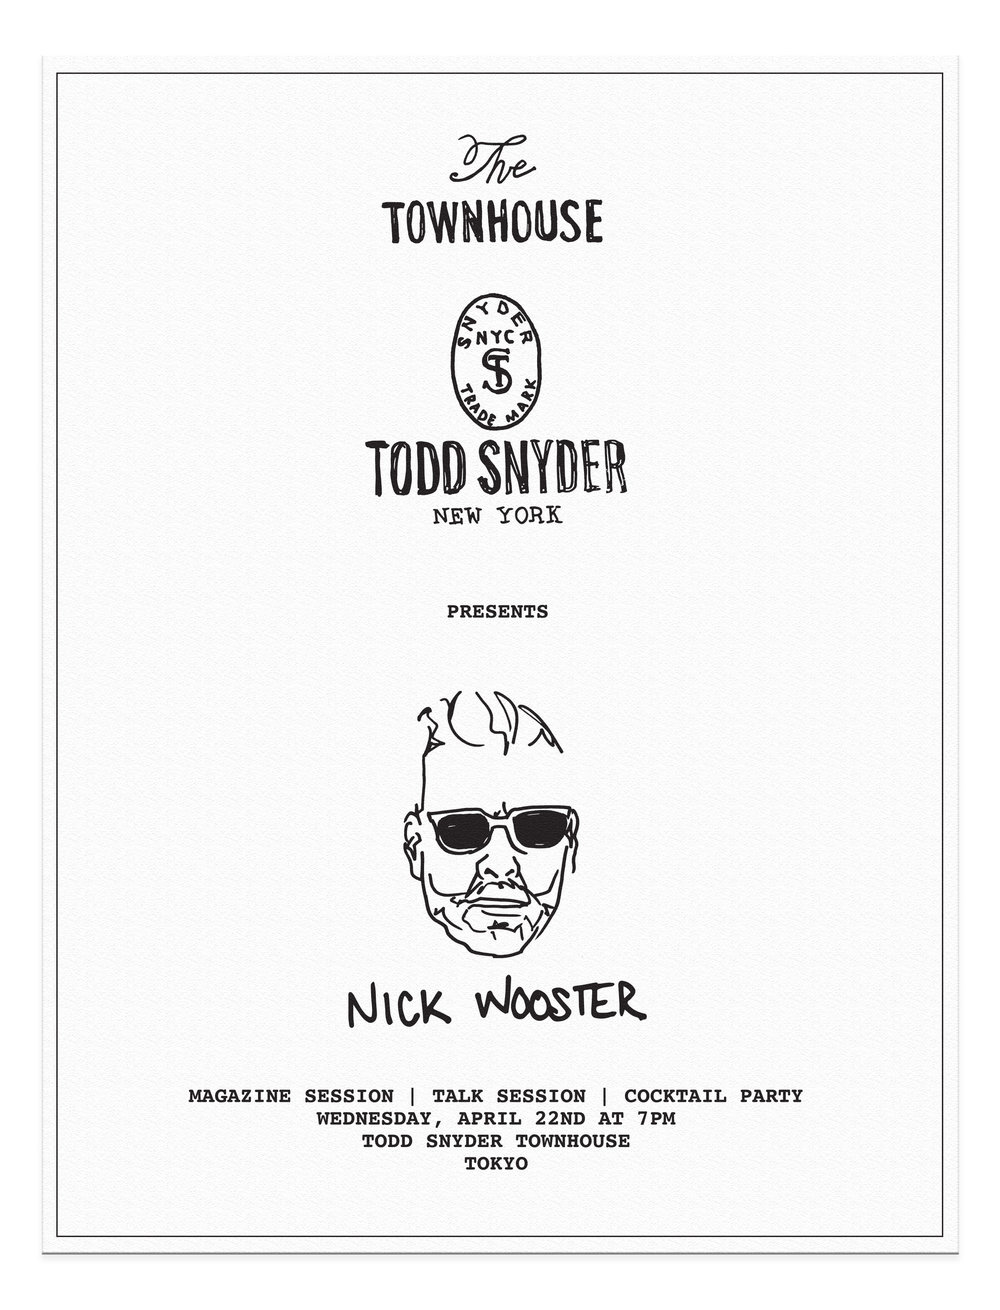 Todd Snyder x Nick Wooster